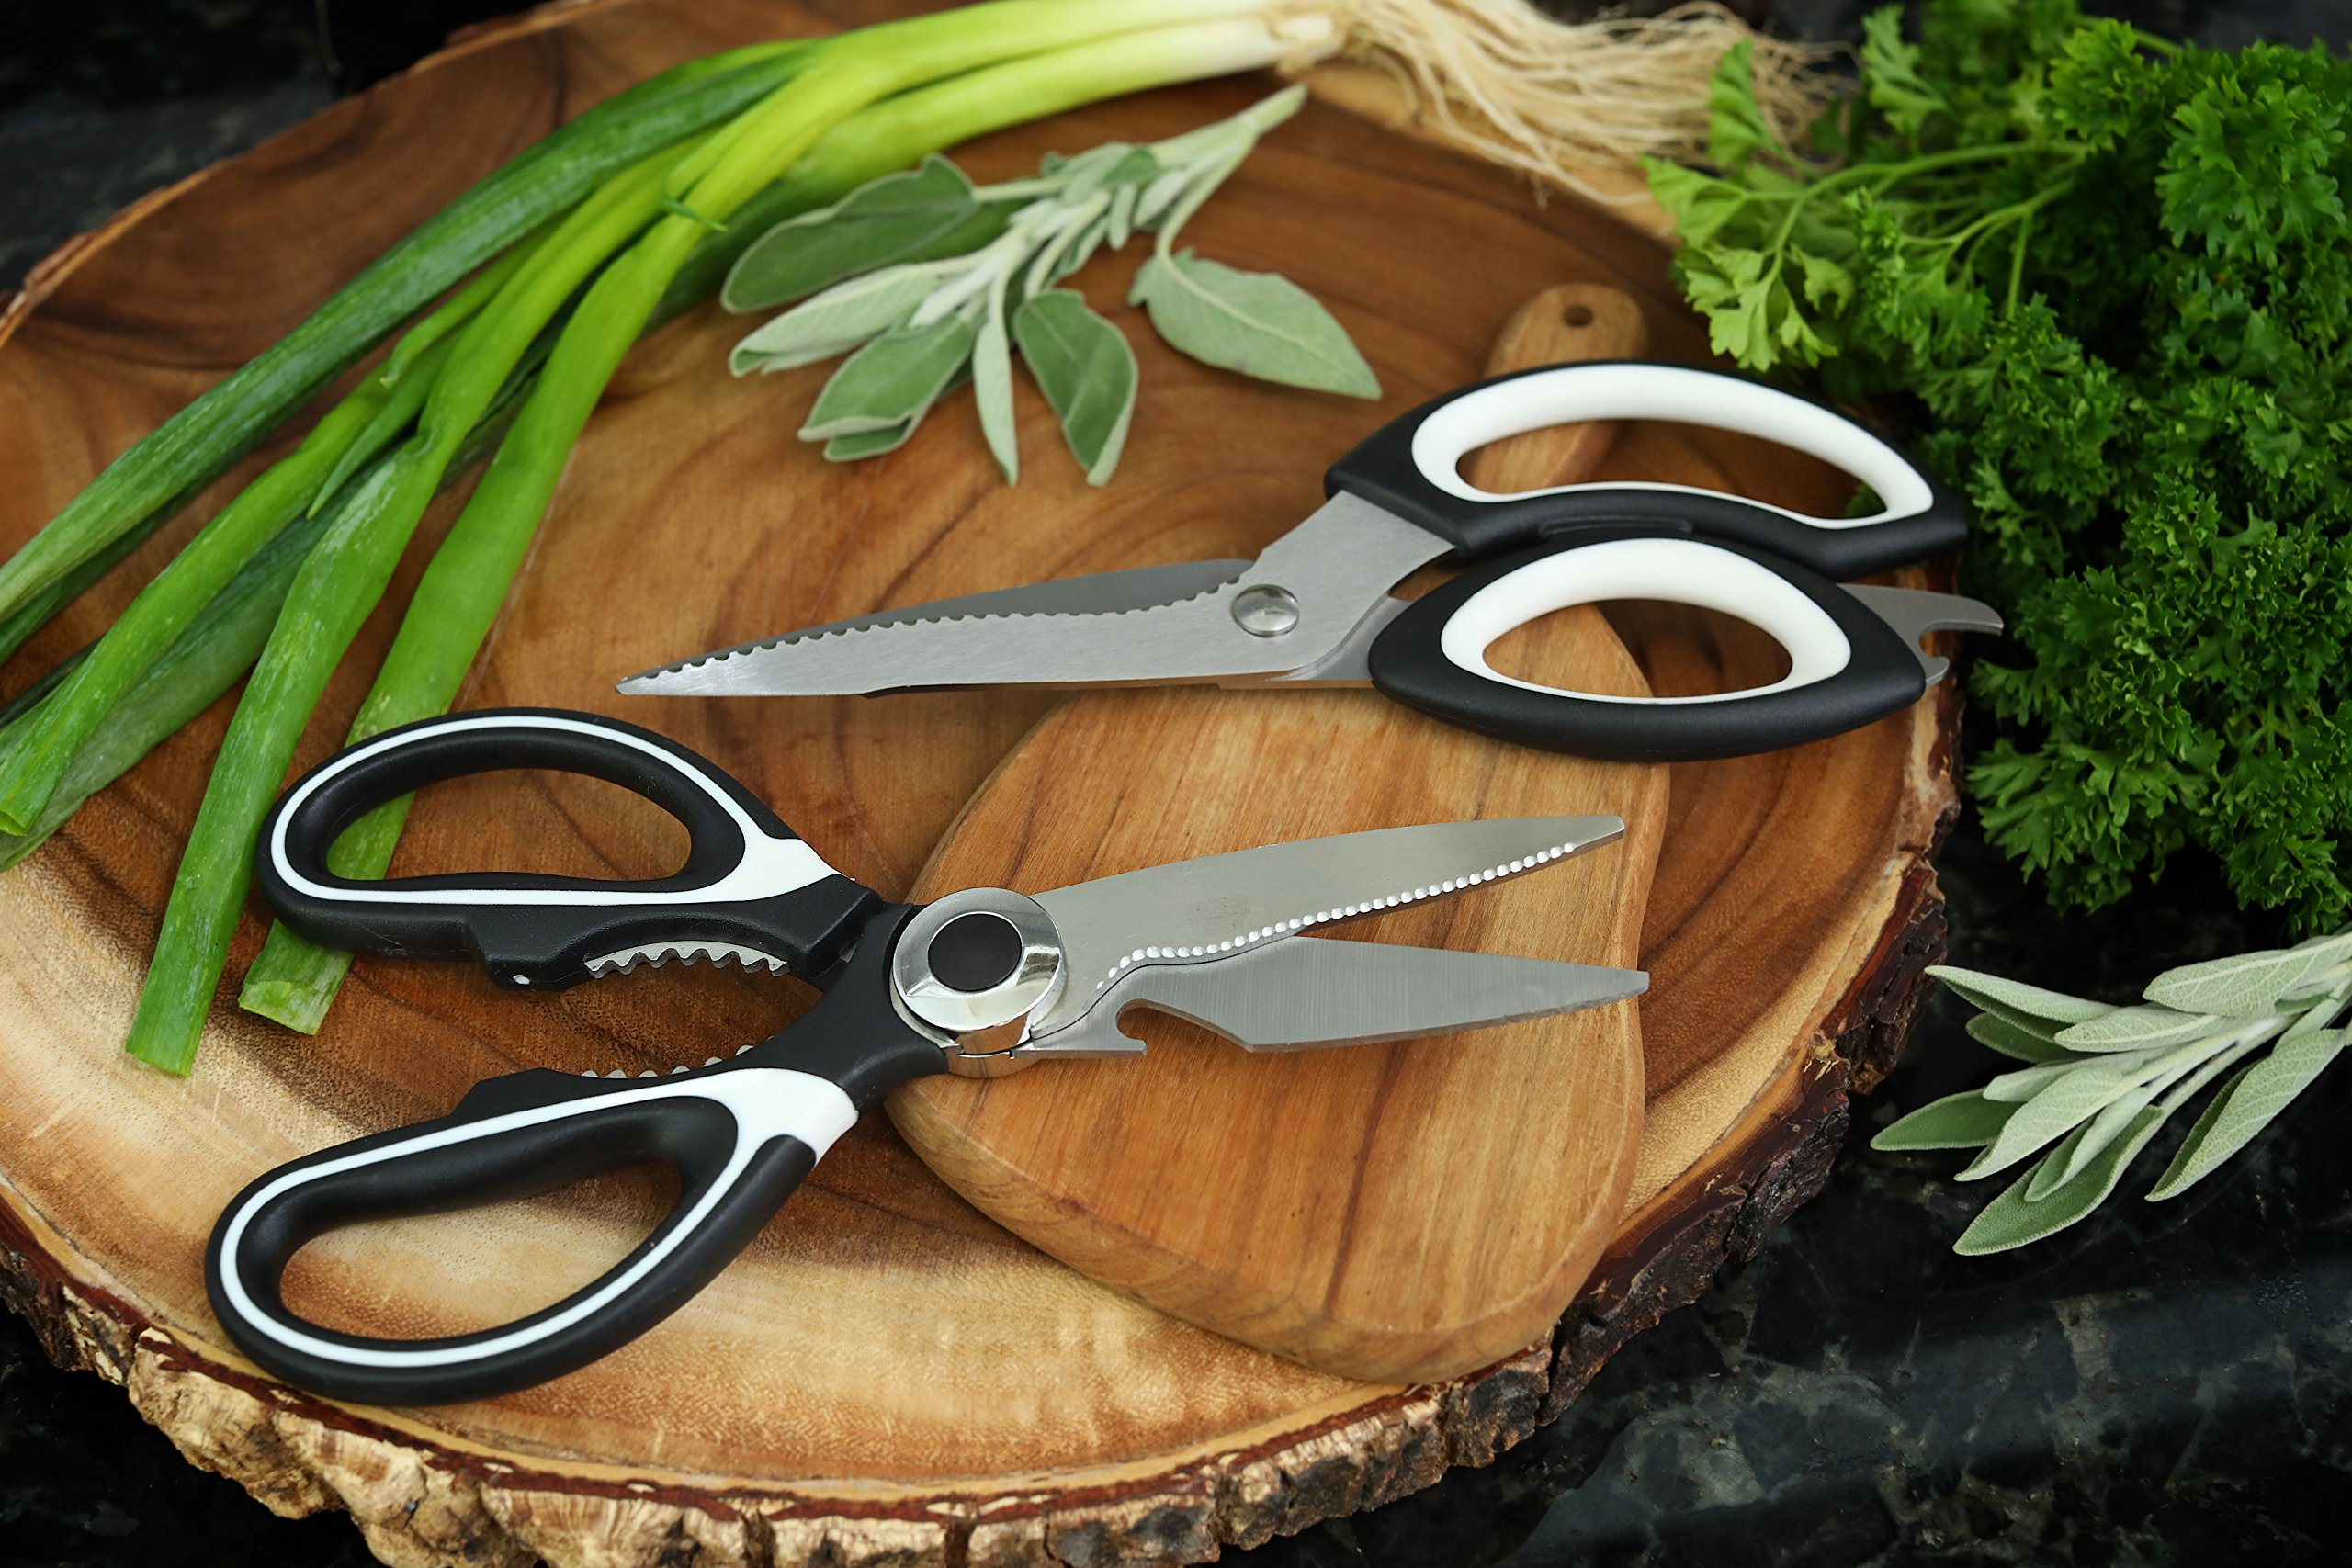 Professional Kitchen Shears (2-Piece Set) Heavy-Duty Scissors | Ultra-Sharp Blades, Ergonomic Grip | Multifunctional Use | Perfect For Cutting Poultry, Chicken, Vegetables, Meat, Fish, Herbs by Prime Kitchen Solutions (Image #5)